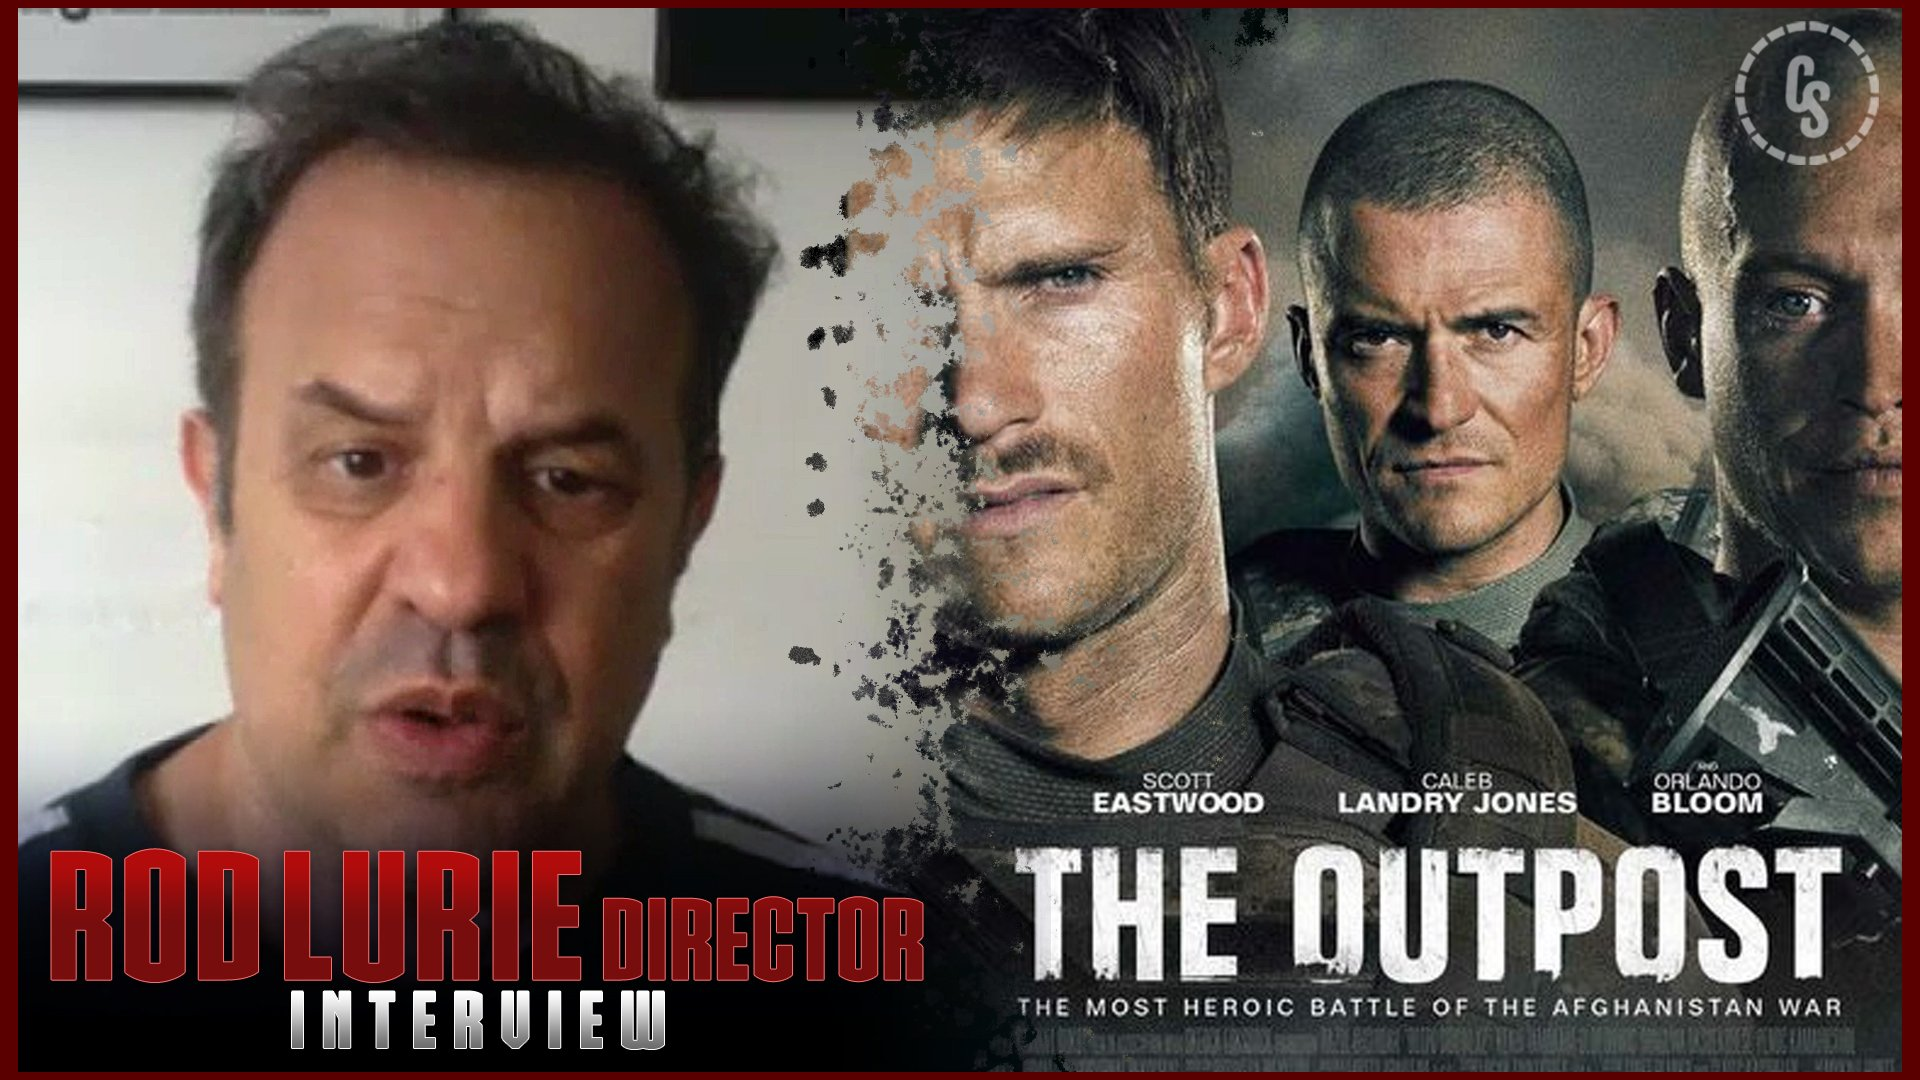 CS Video: Director Rod Lurie on The Outpost, Plus Exclusive Clip!